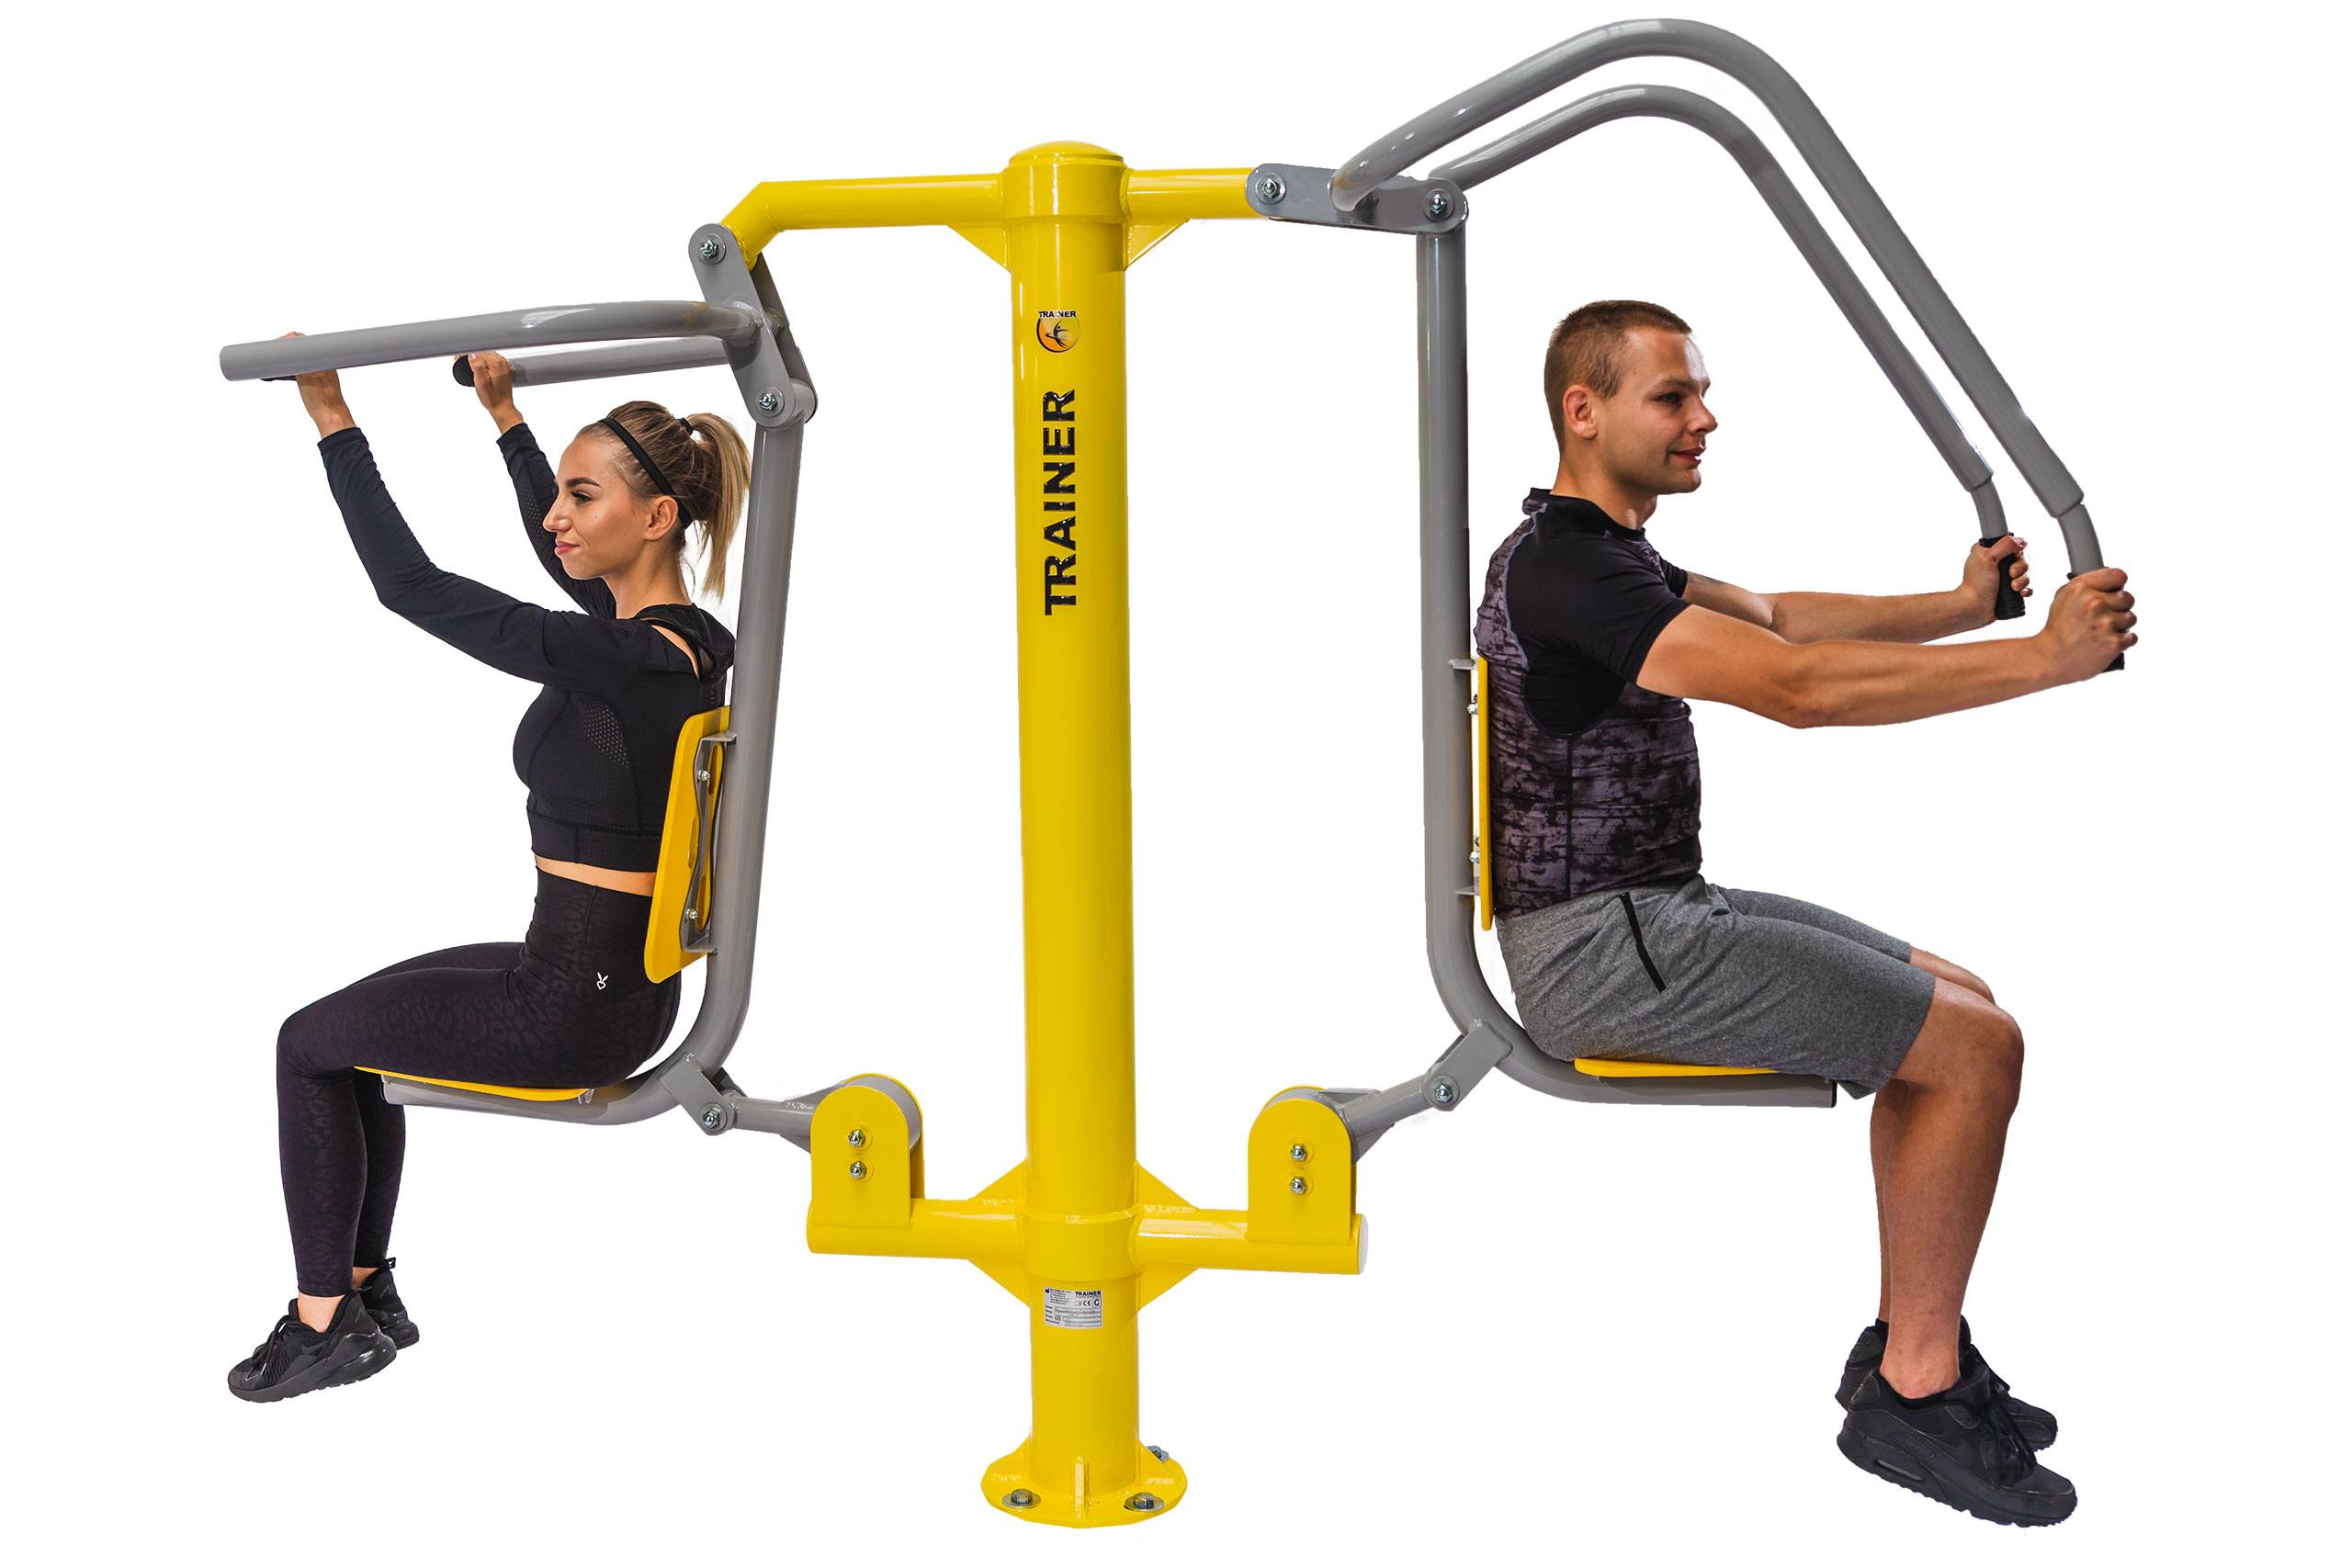 Push & Pull Chairs Outdoor Fitness Equipment